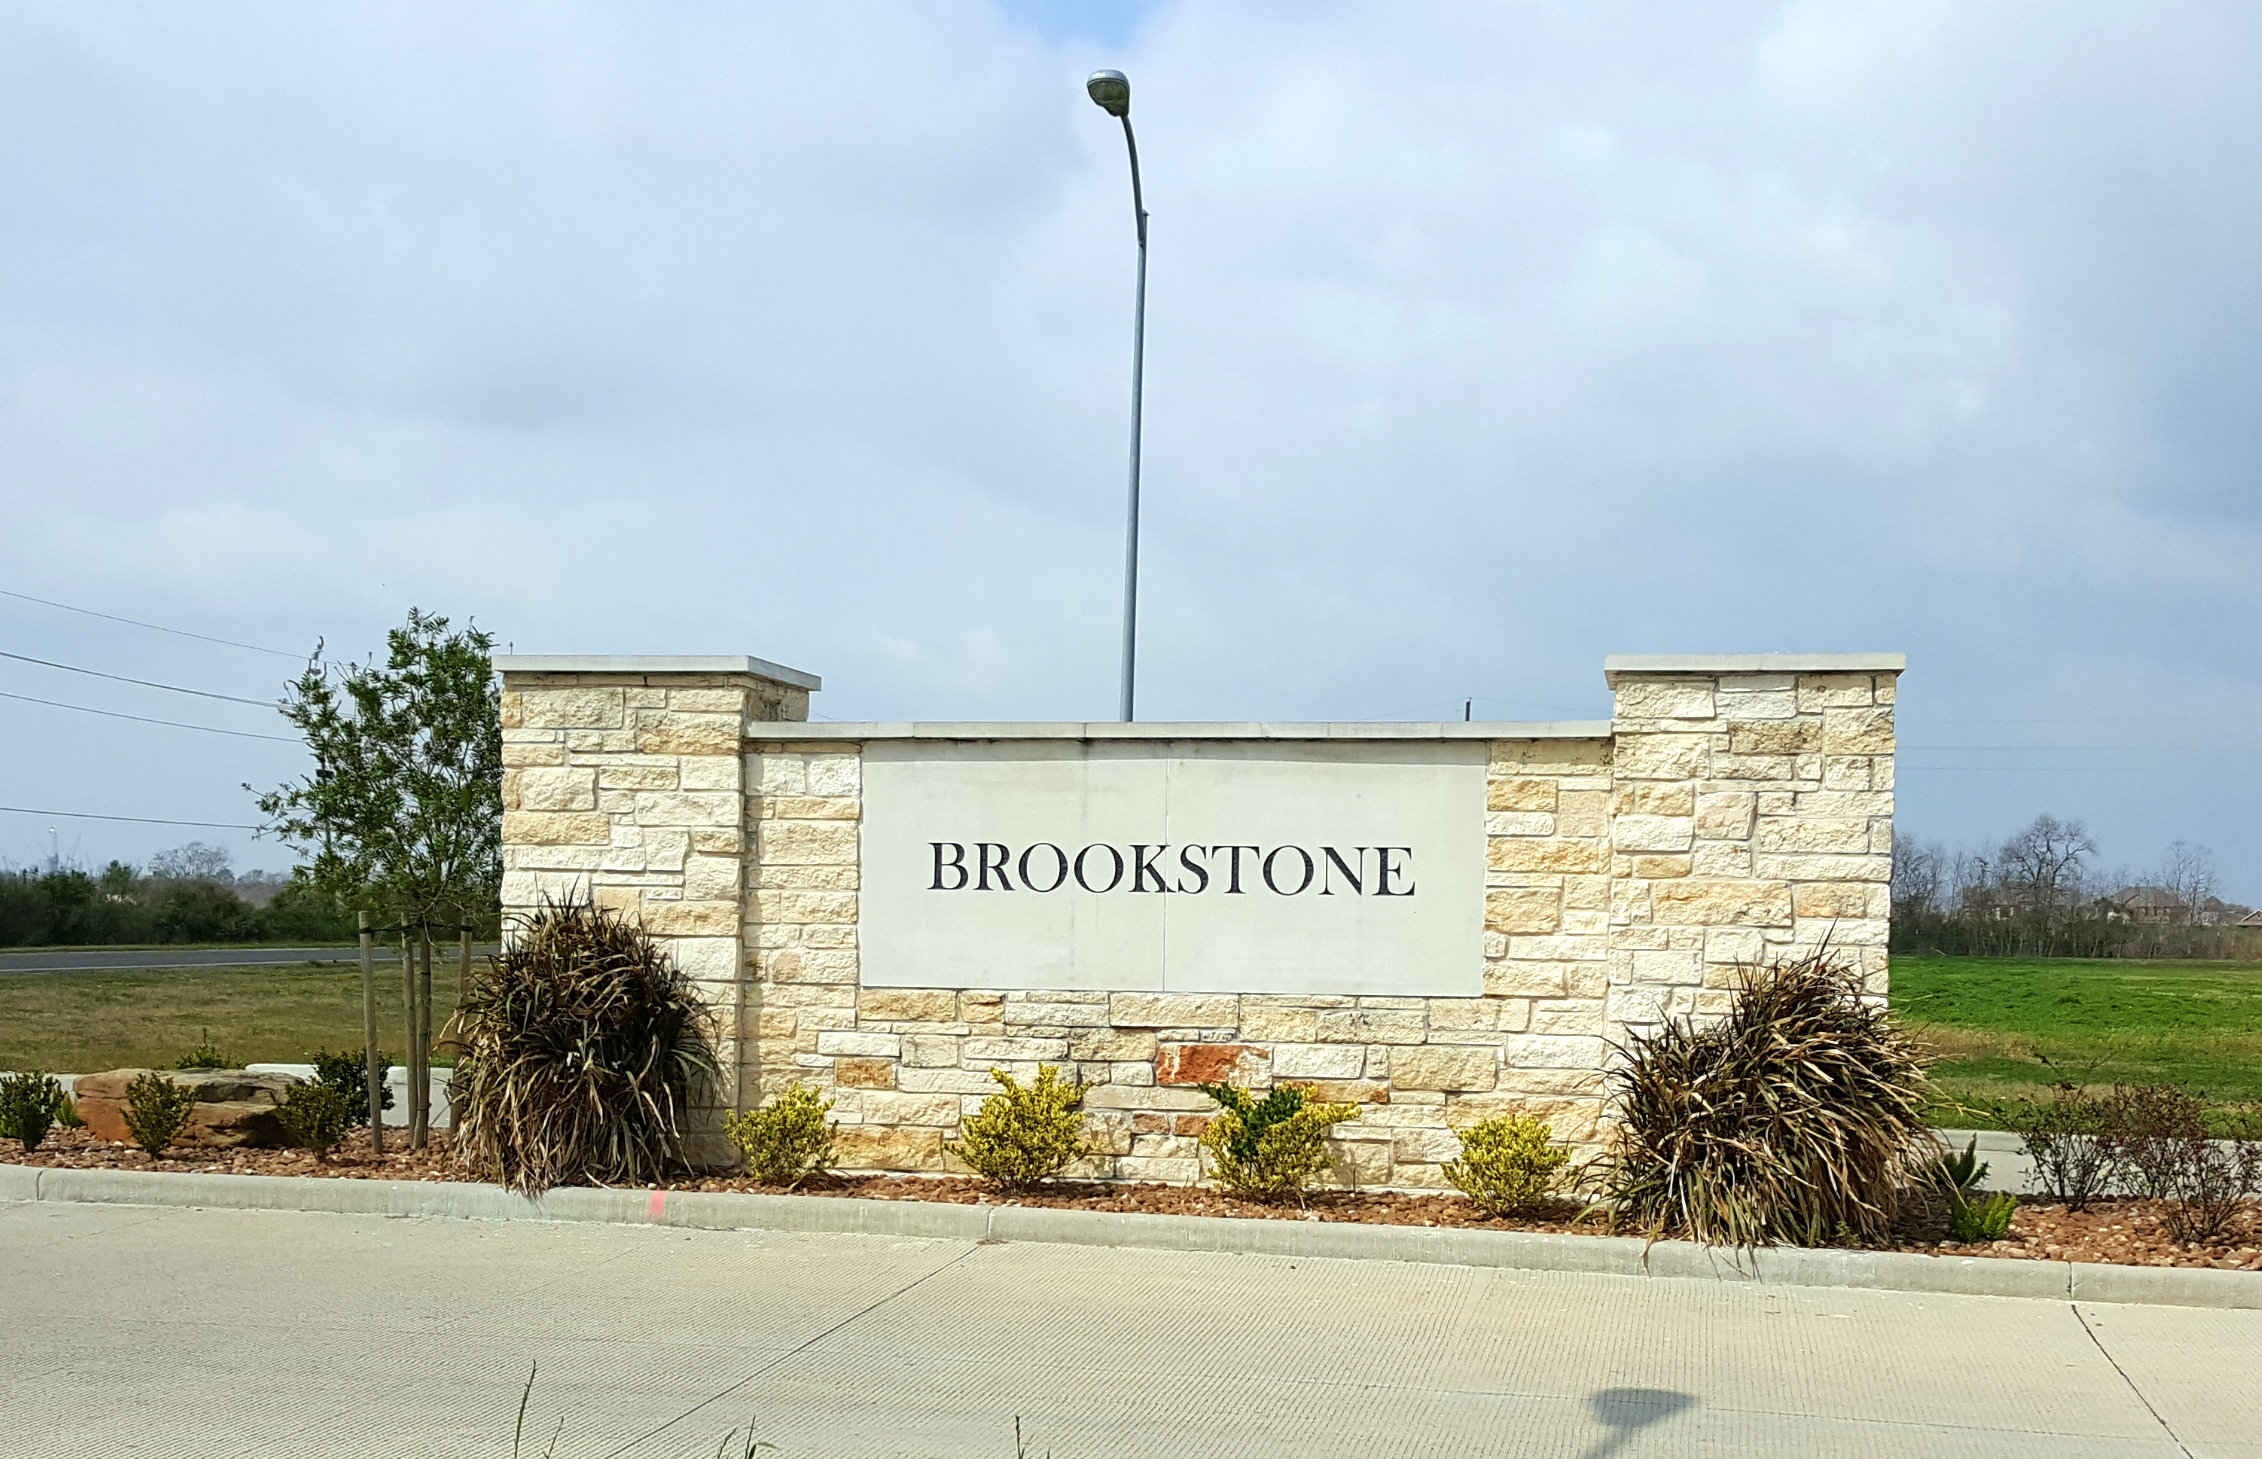 Brookstone Subdivision Entrance